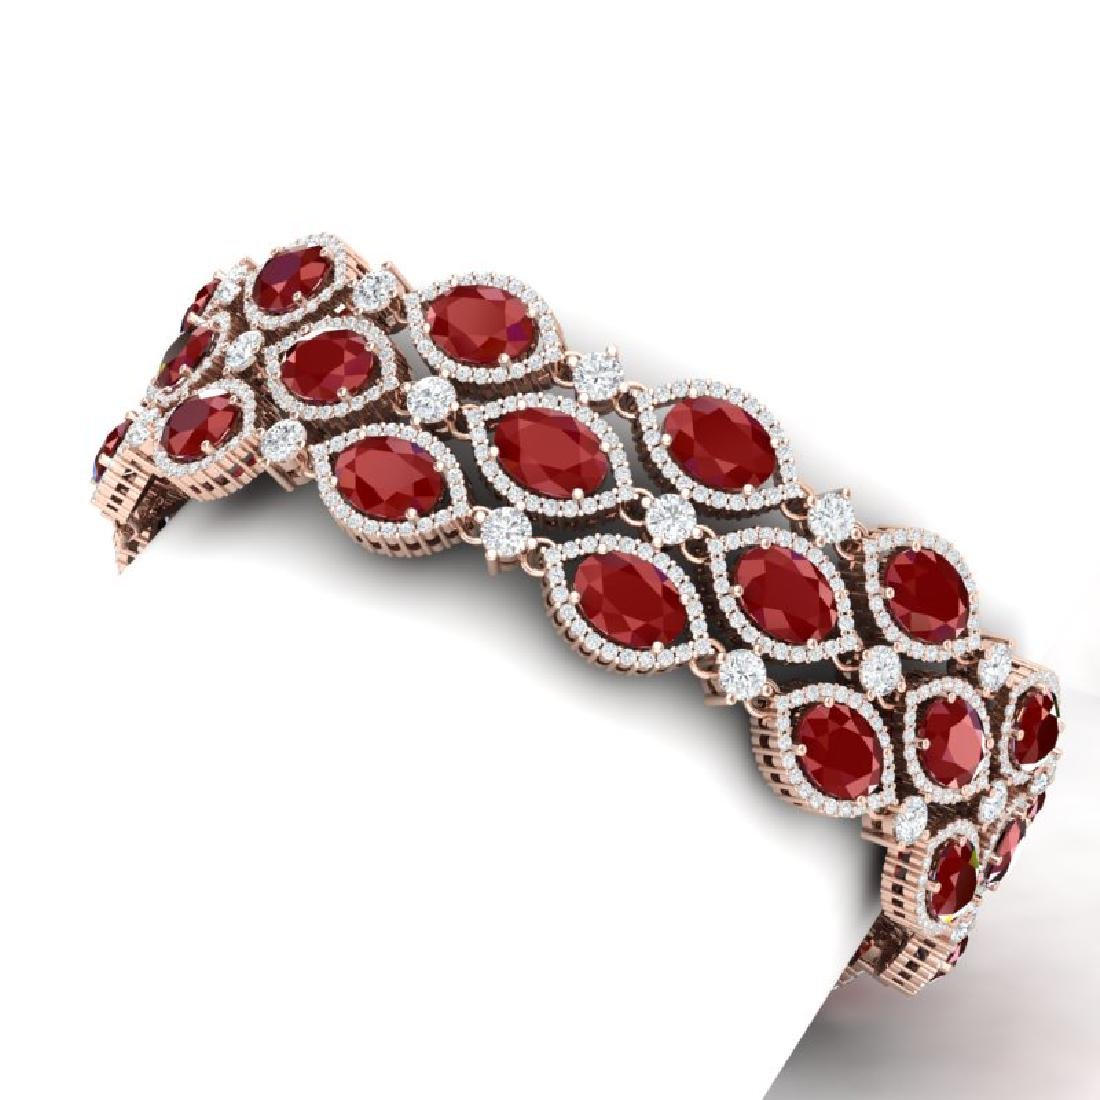 47.84 CTW Royalty Ruby & VS Diamond Bracelet 18K Rose - 2